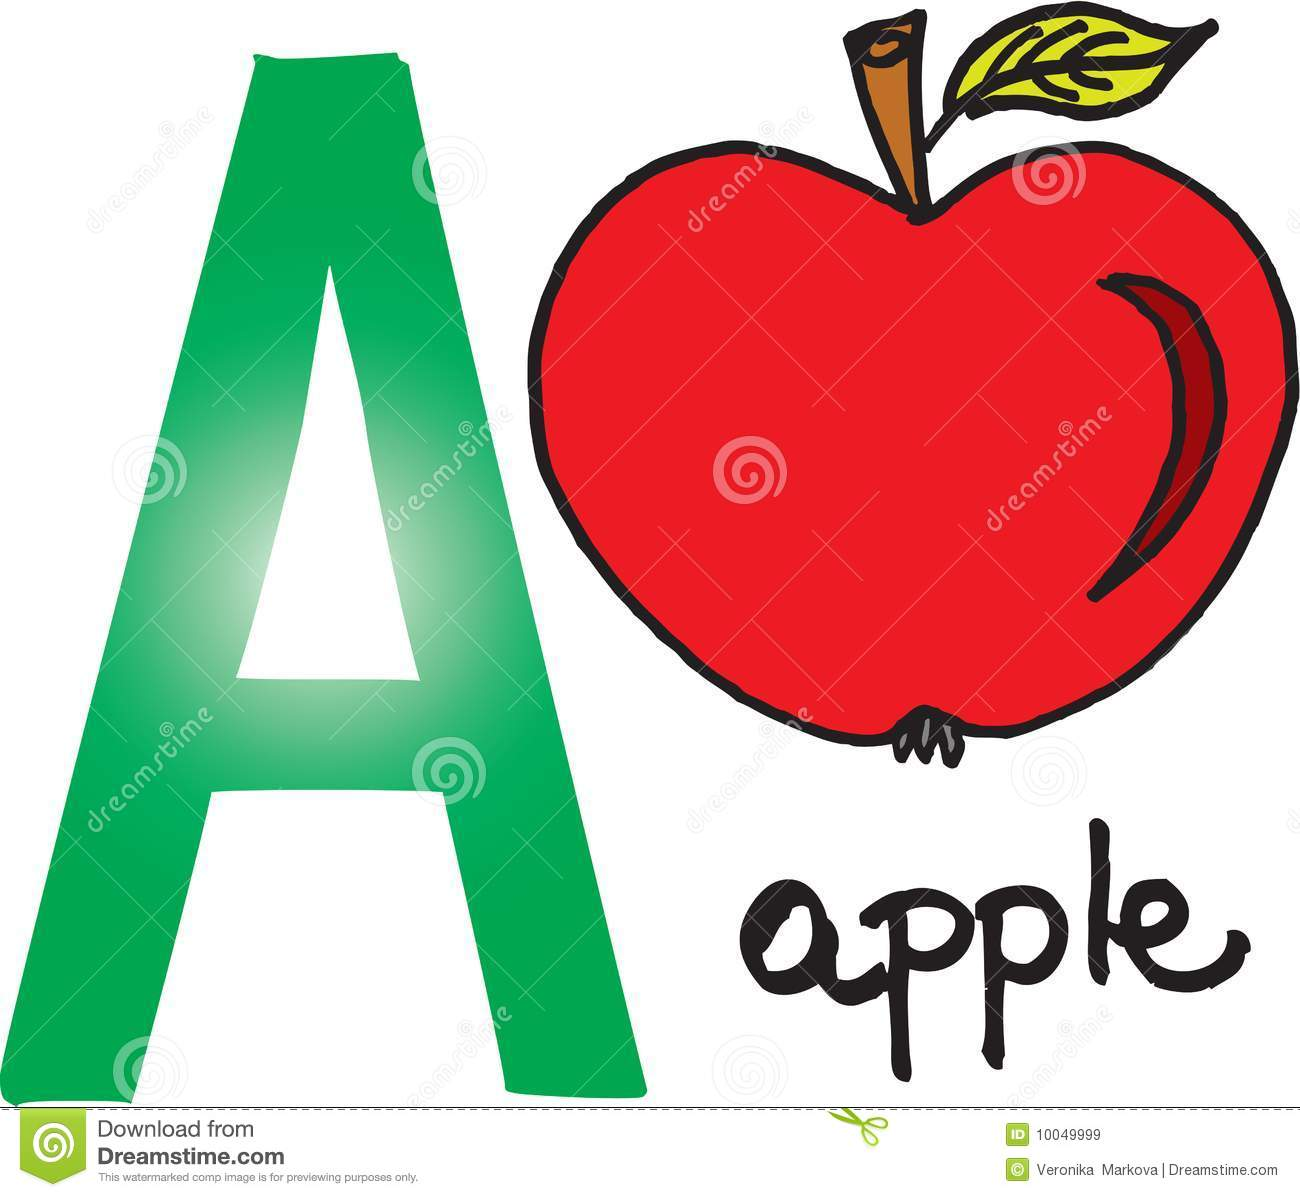 A alphabet letter apple clipart image freeuse stock Letter a apple clipart - ClipartFox image freeuse stock